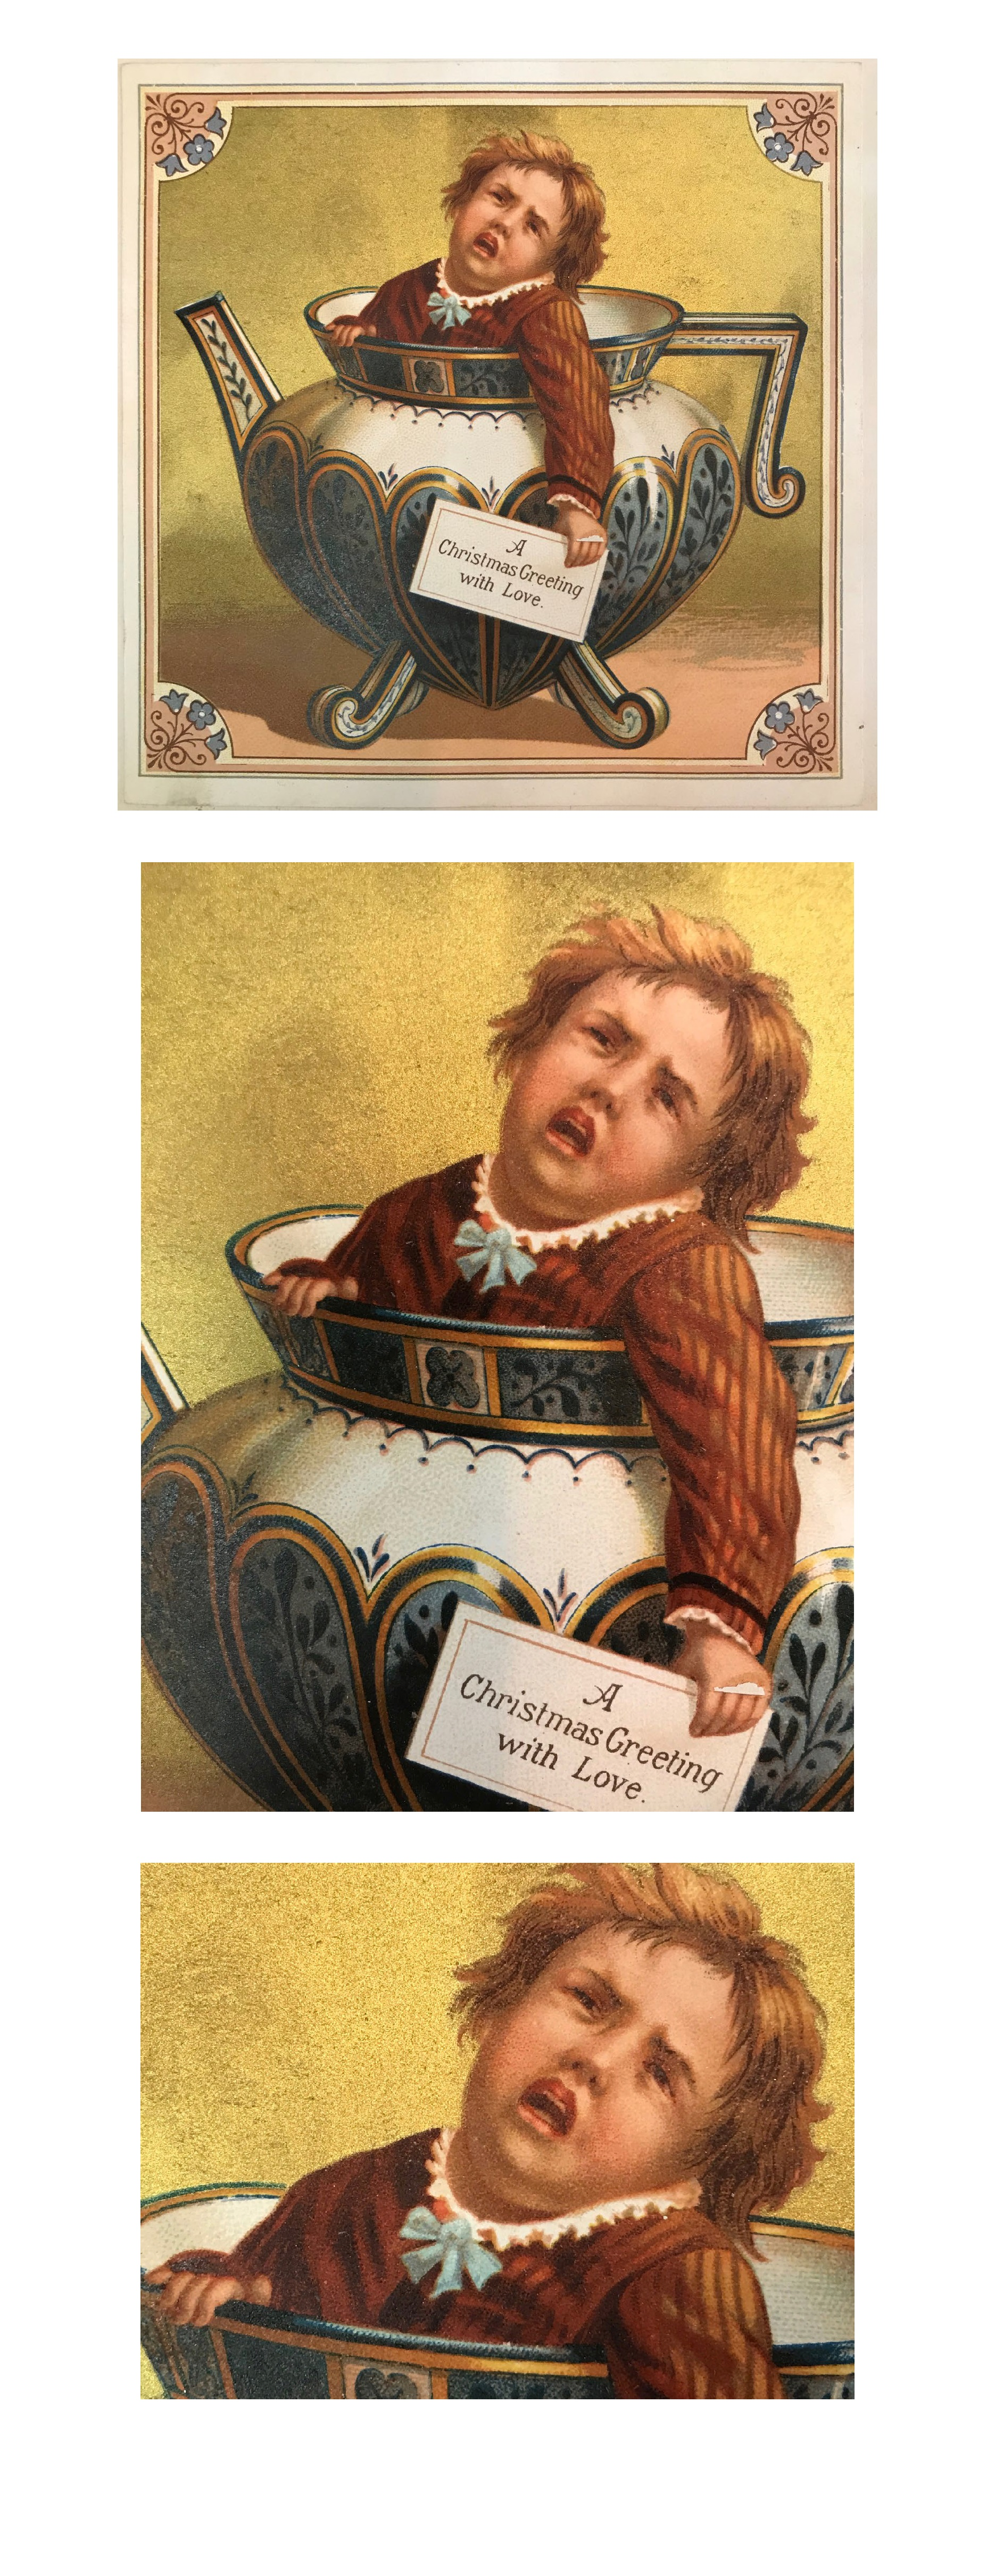 """A Christmas Greeting with Love"" featuring a distressed teapot child, 1880s"